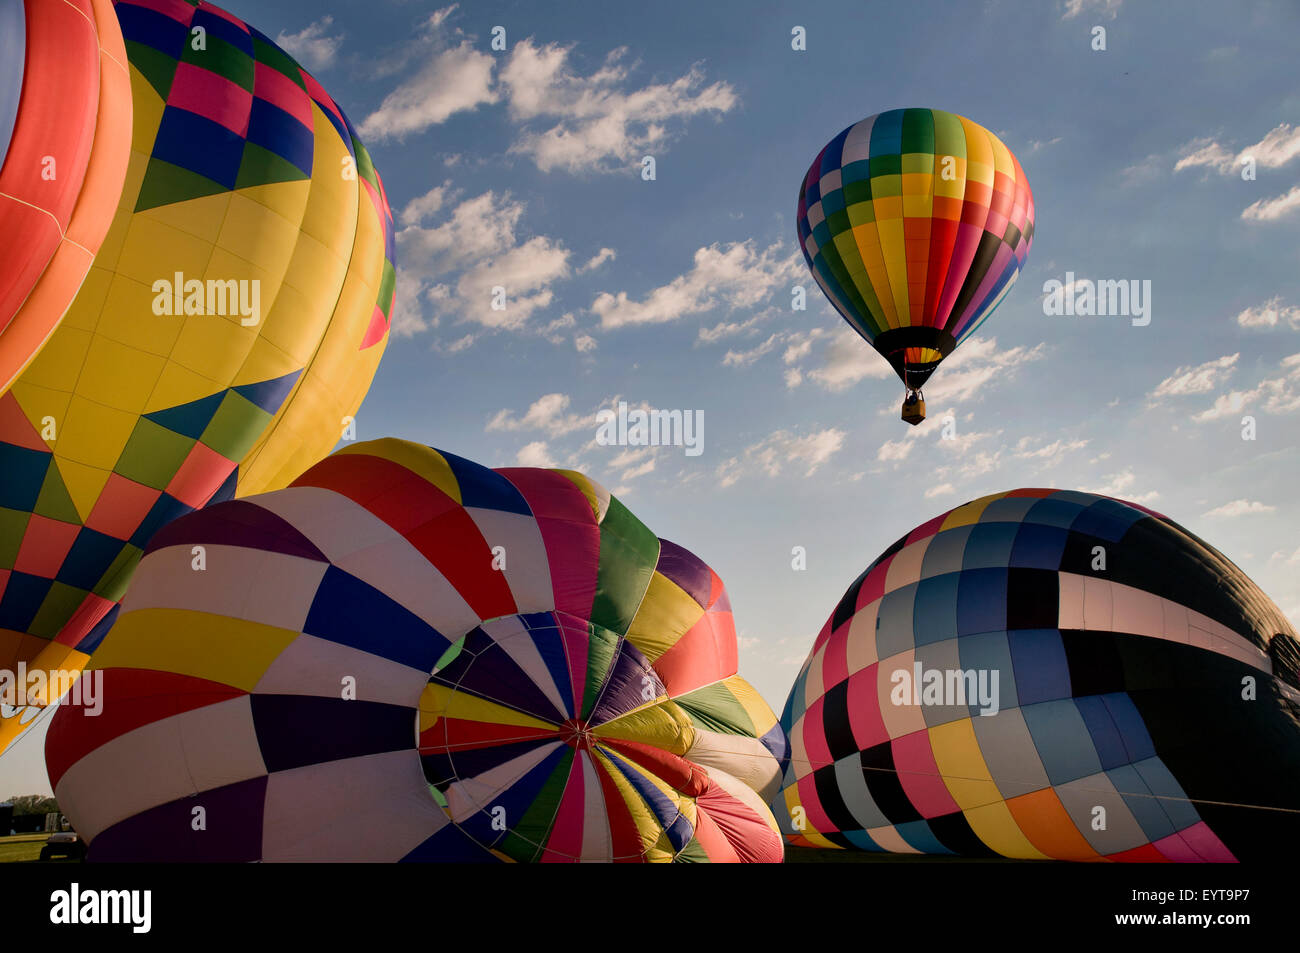 One hot-air balloon ascending above other inflating balloons at a festival. (Readington Balloon Festival) - Stock Image